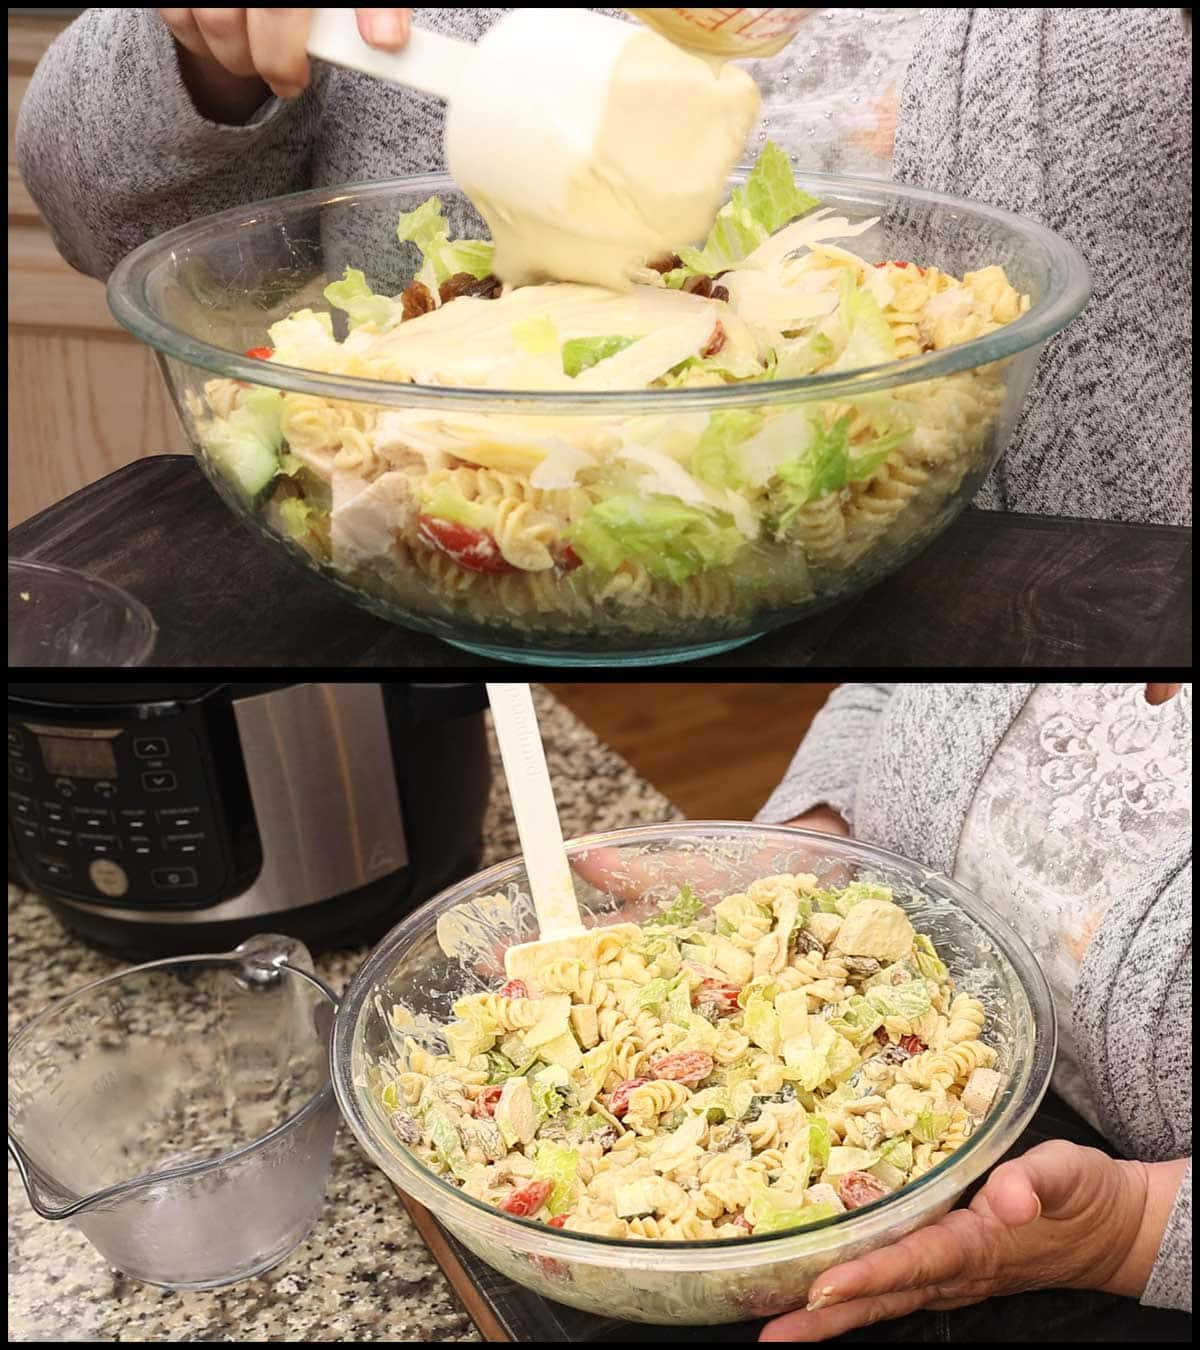 adding the remaining caesar dressing and mixing the pasta salad before serving